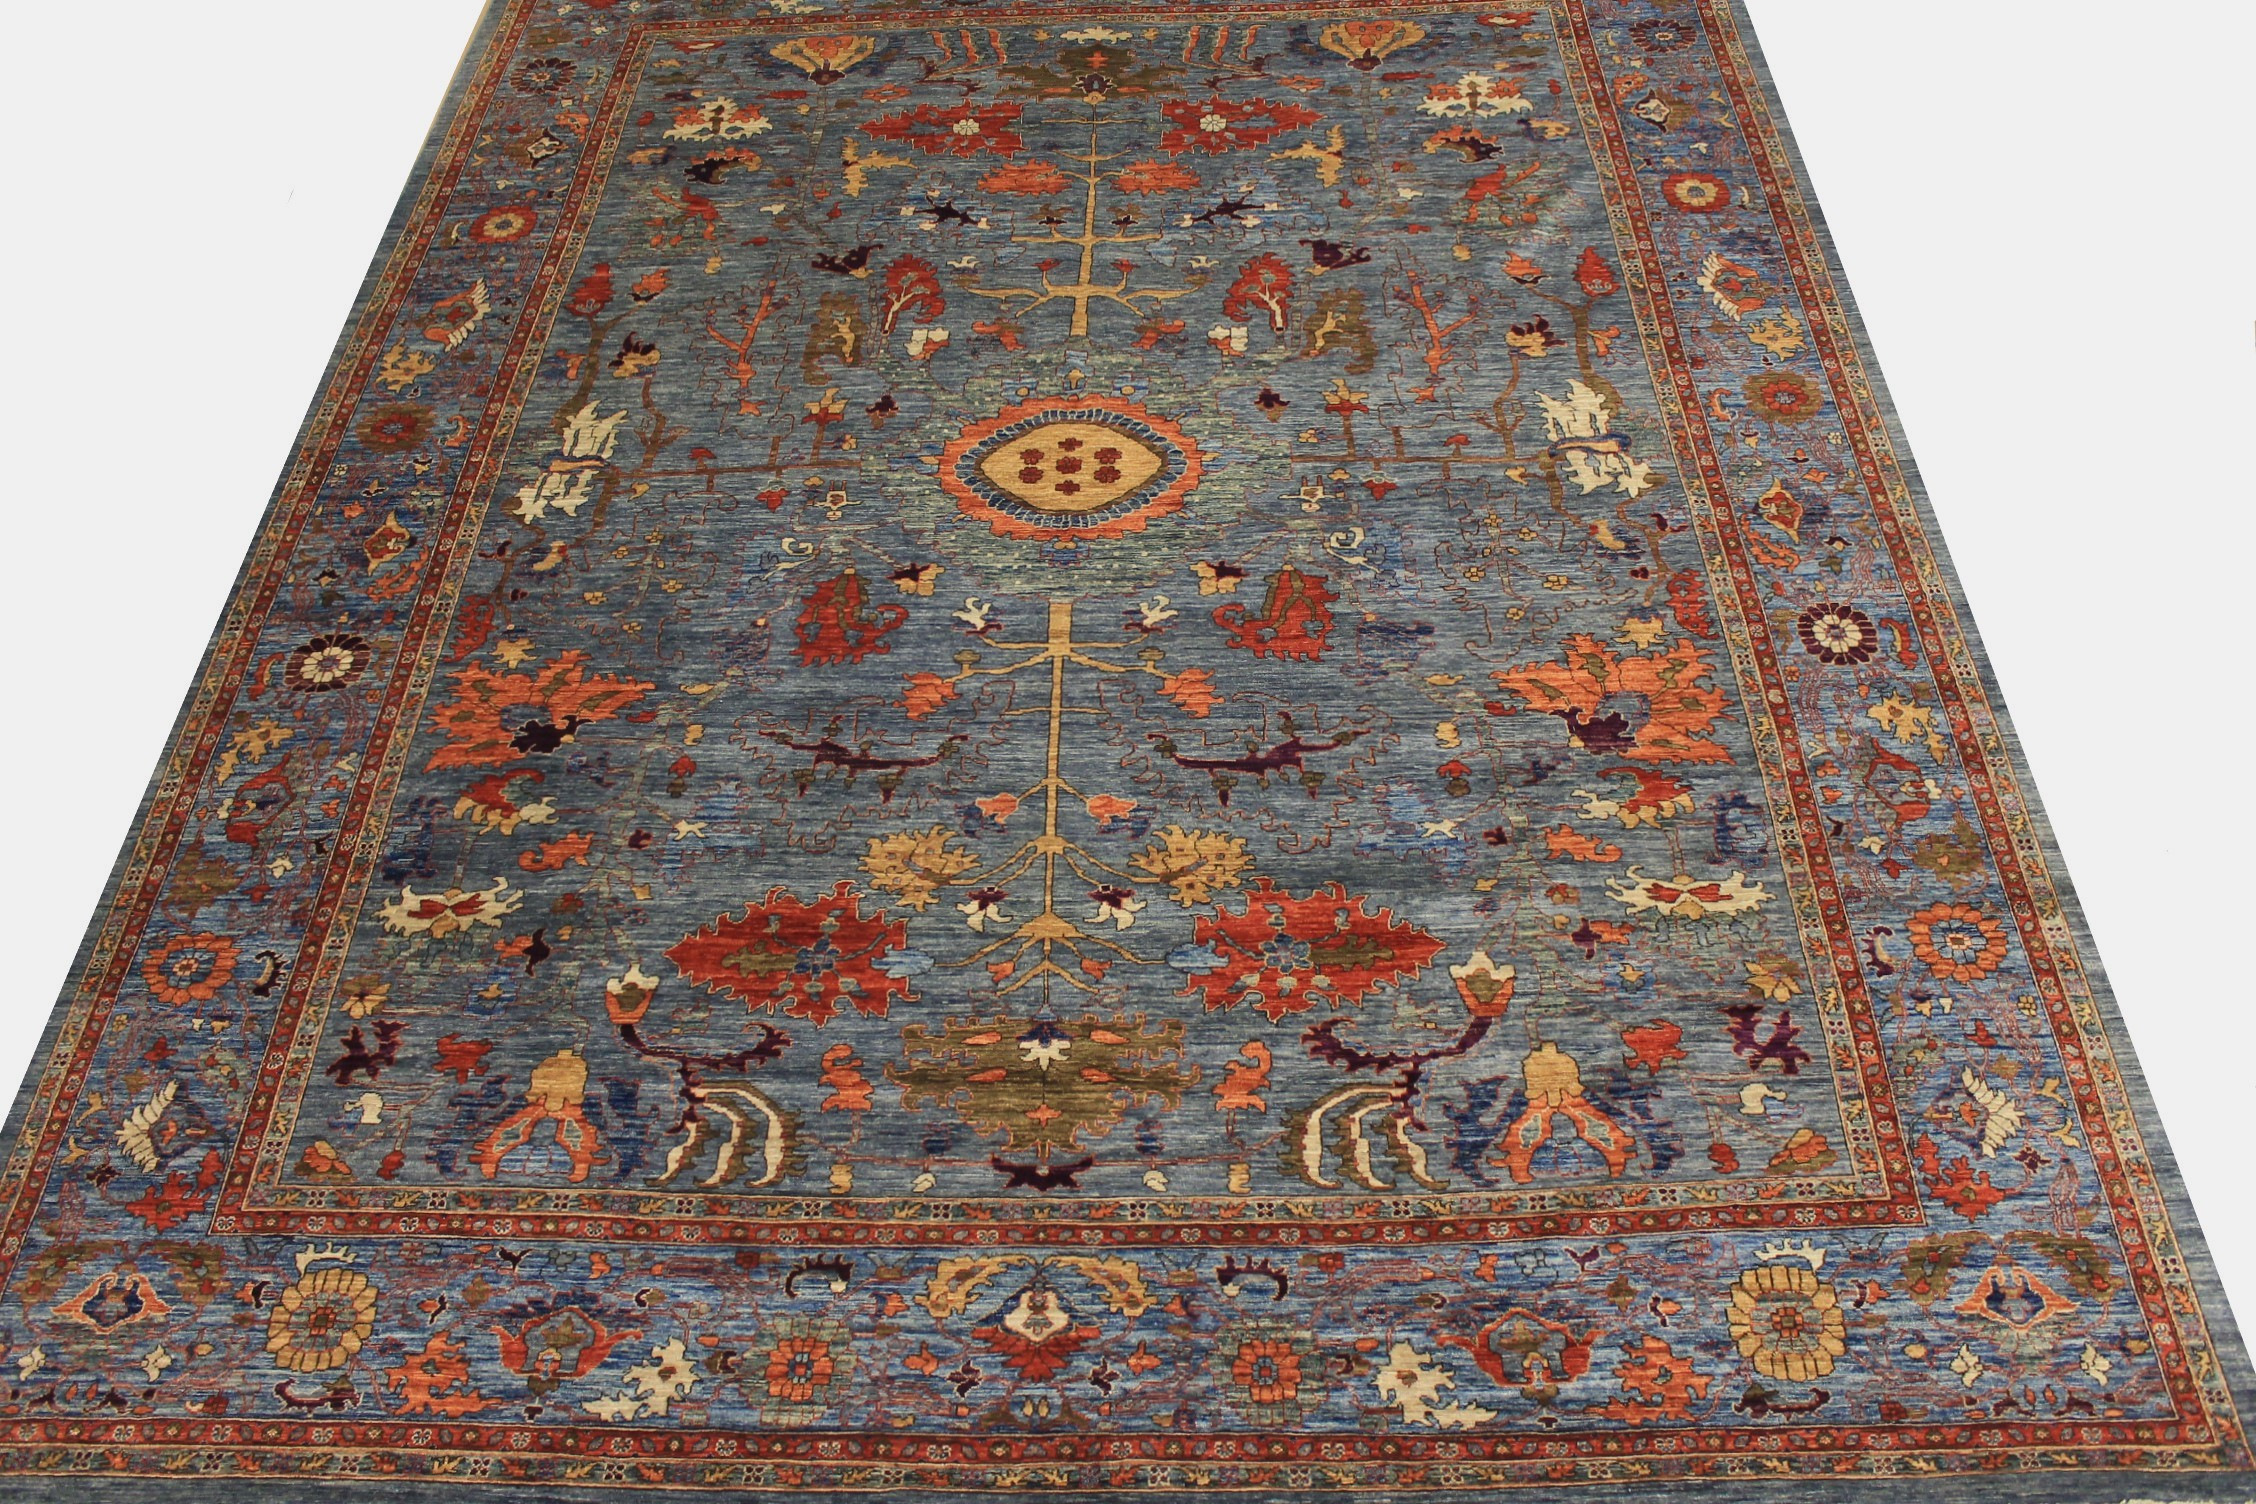 OVERSIZE Antique Revival Hand Knotted Wool Area Rug - MR024994